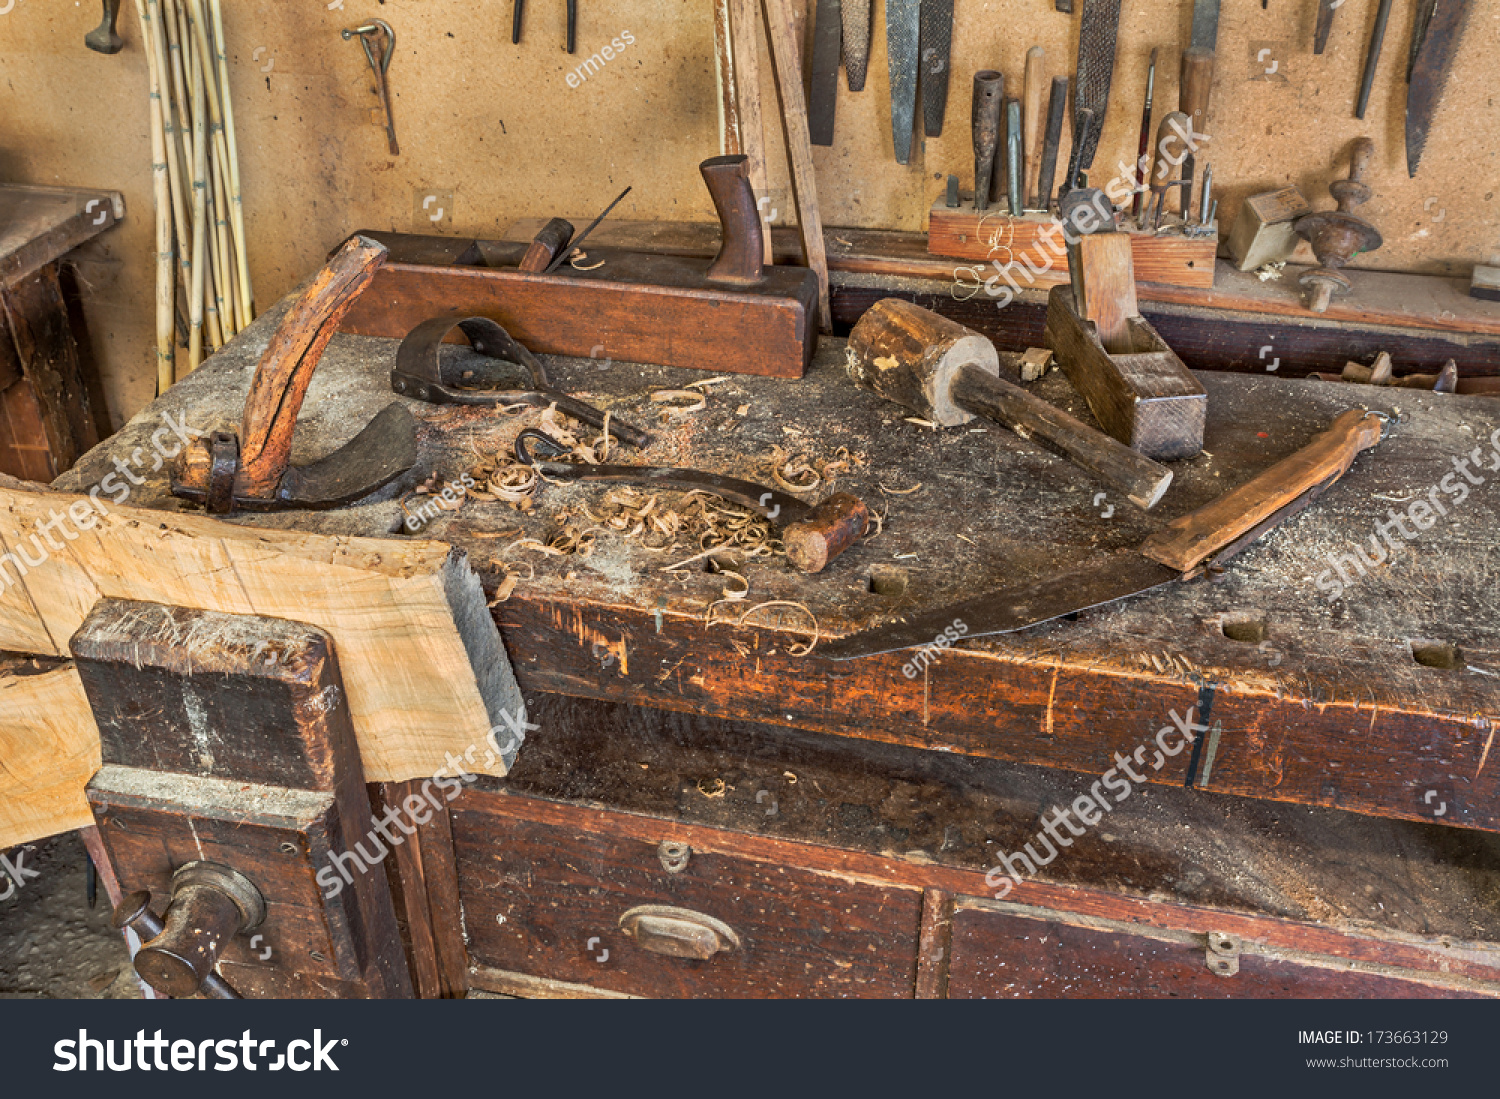 Woodworking Tools Antique Carpentry Old Bench Stock Photo